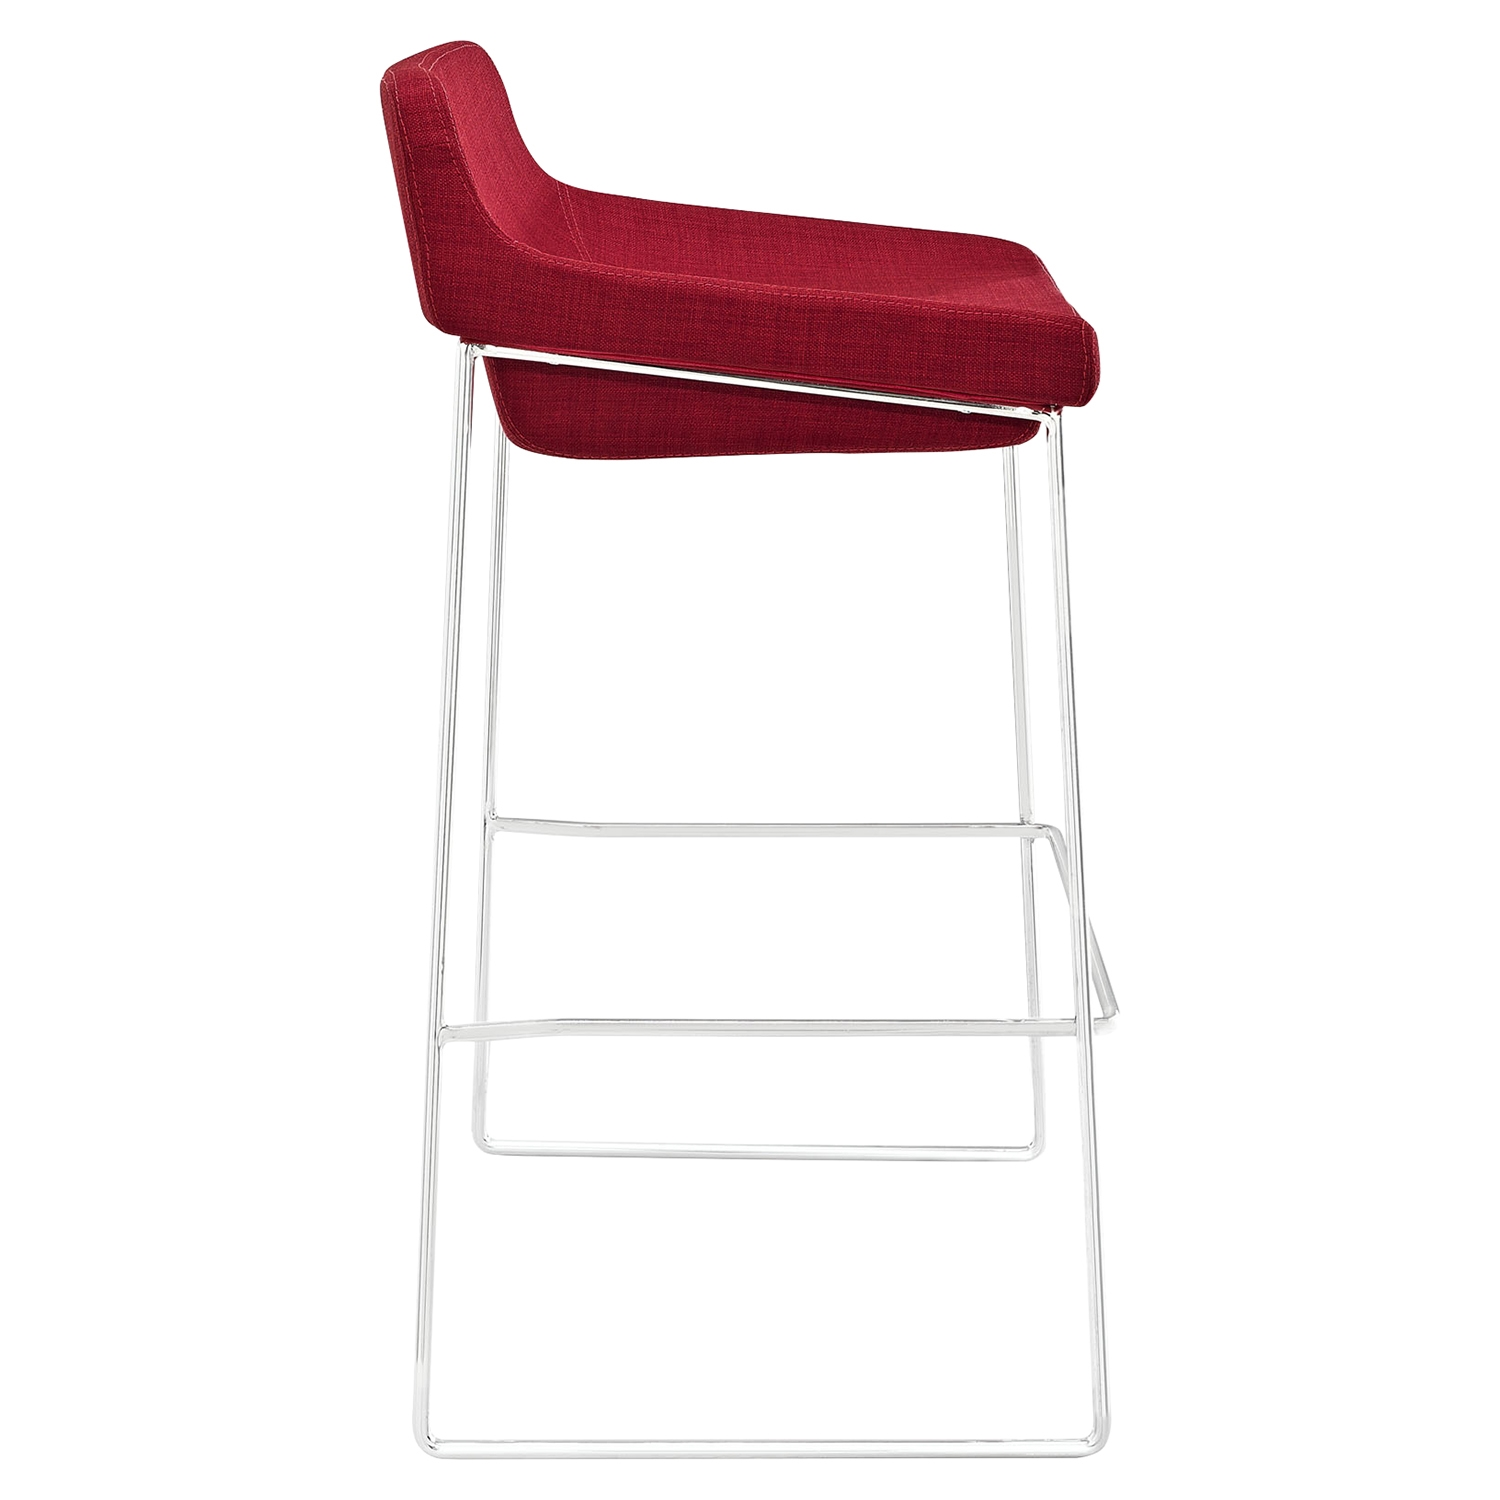 Garner Bar Stool - Backless, Red (Set of 2) - EEI-1364-RED